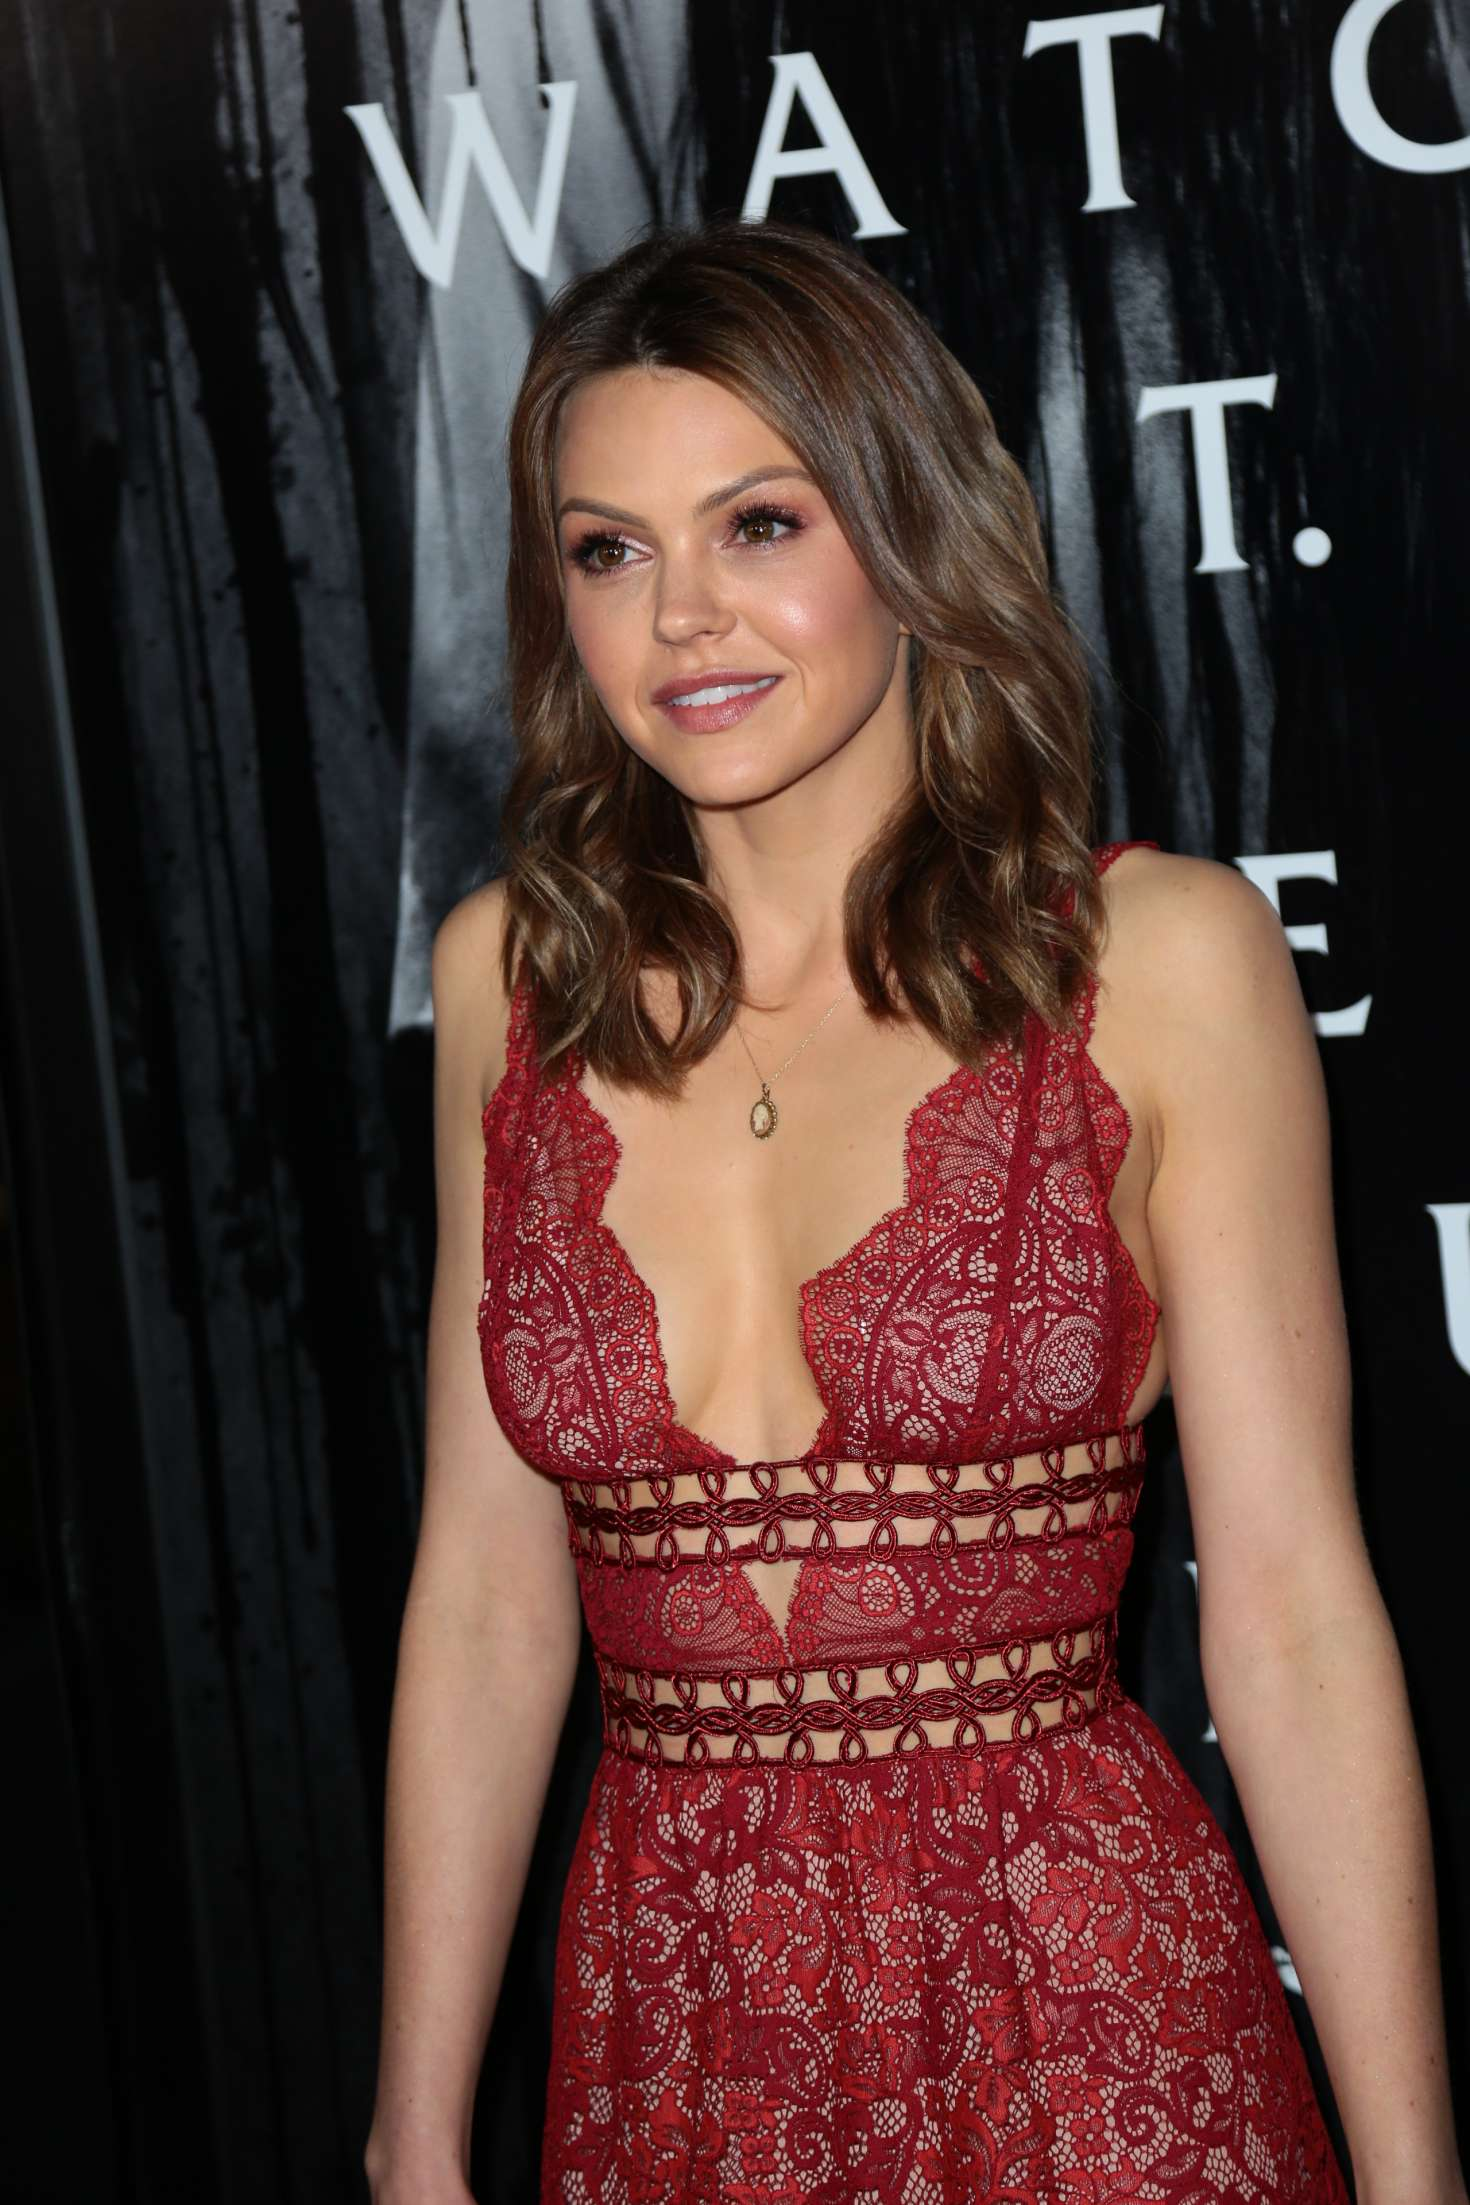 ICloud Aimee Teegarden naked (77 photo), Sexy, Cleavage, Boobs, underwear 2006